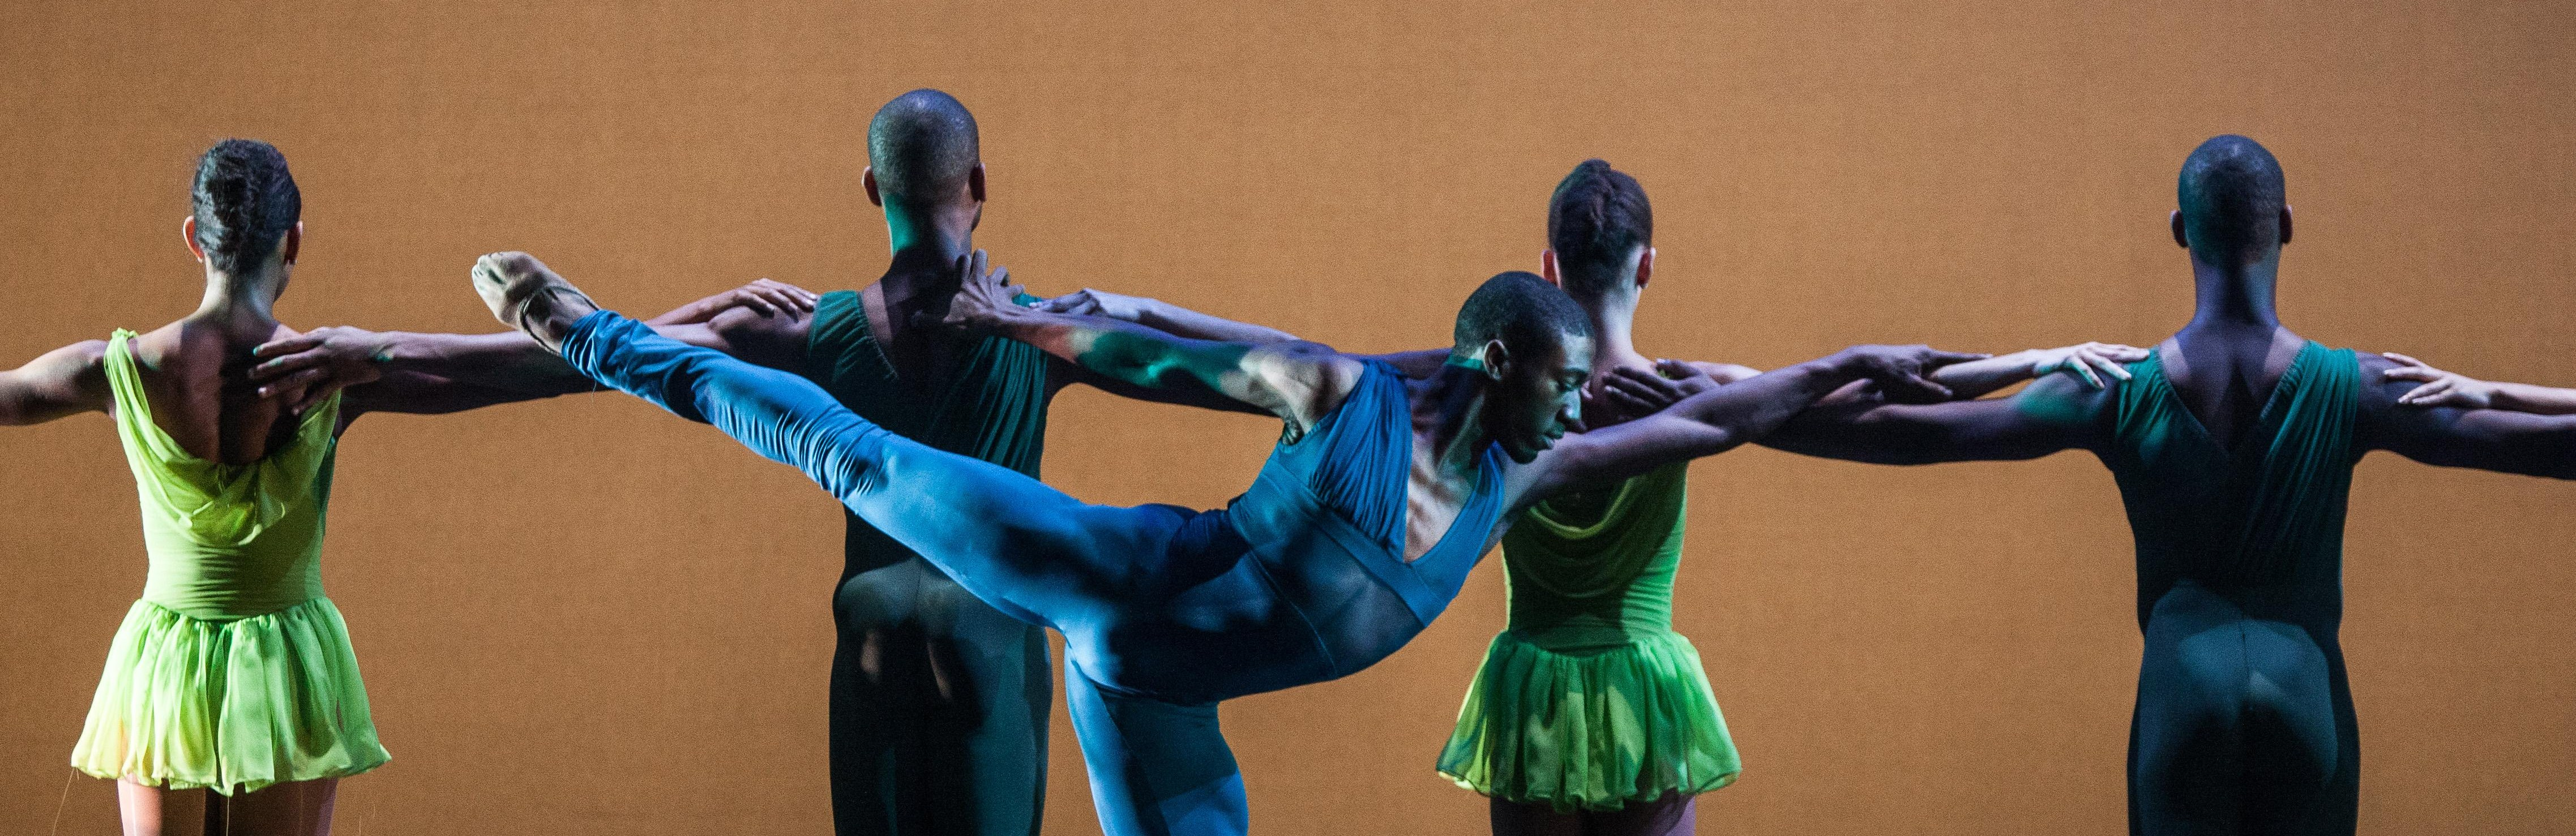 WELCOME BACK: Dance company returns in fine form after eight-year pause